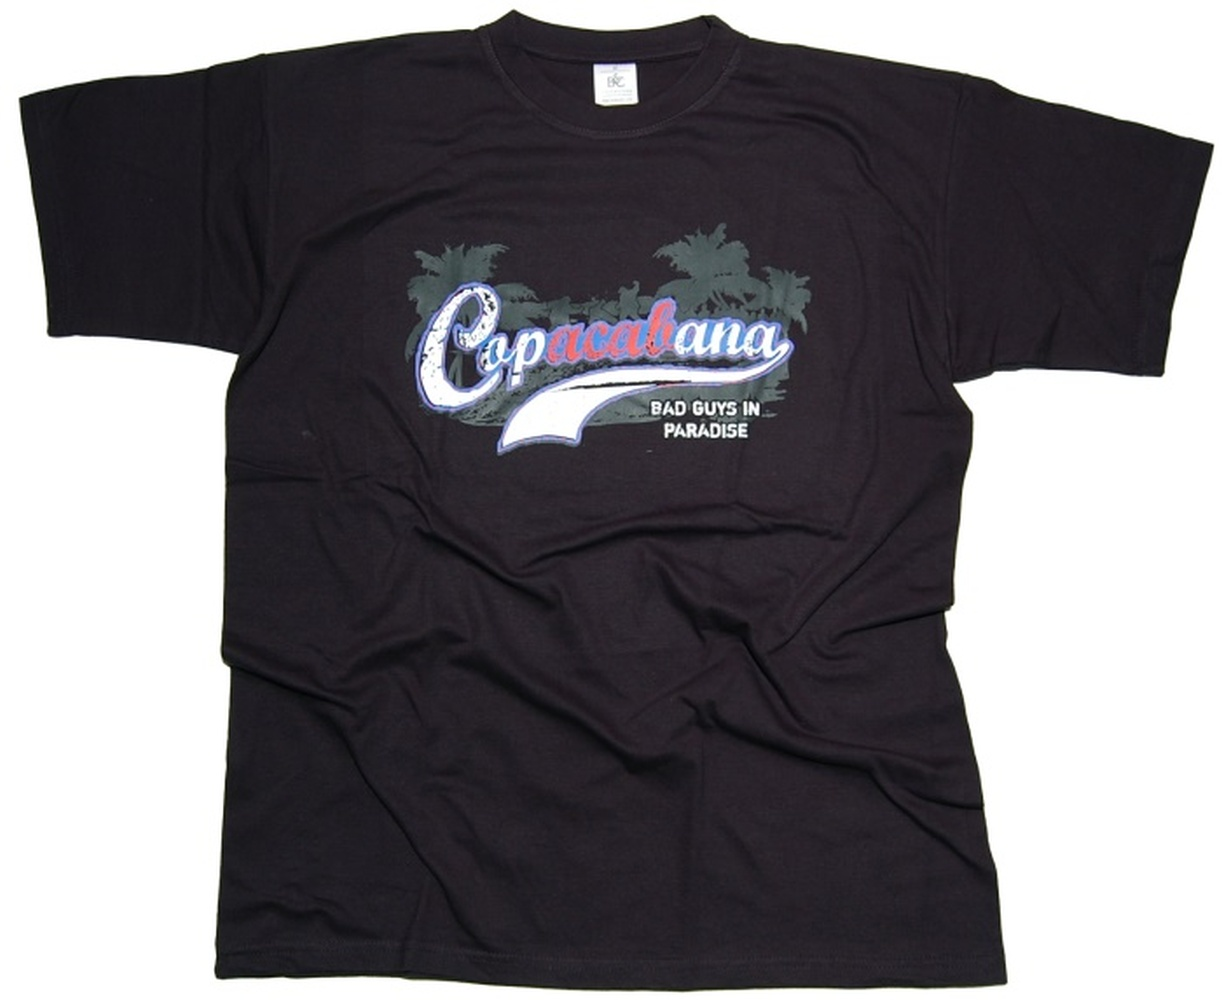 T-Shirt Copacabana Bad Guys